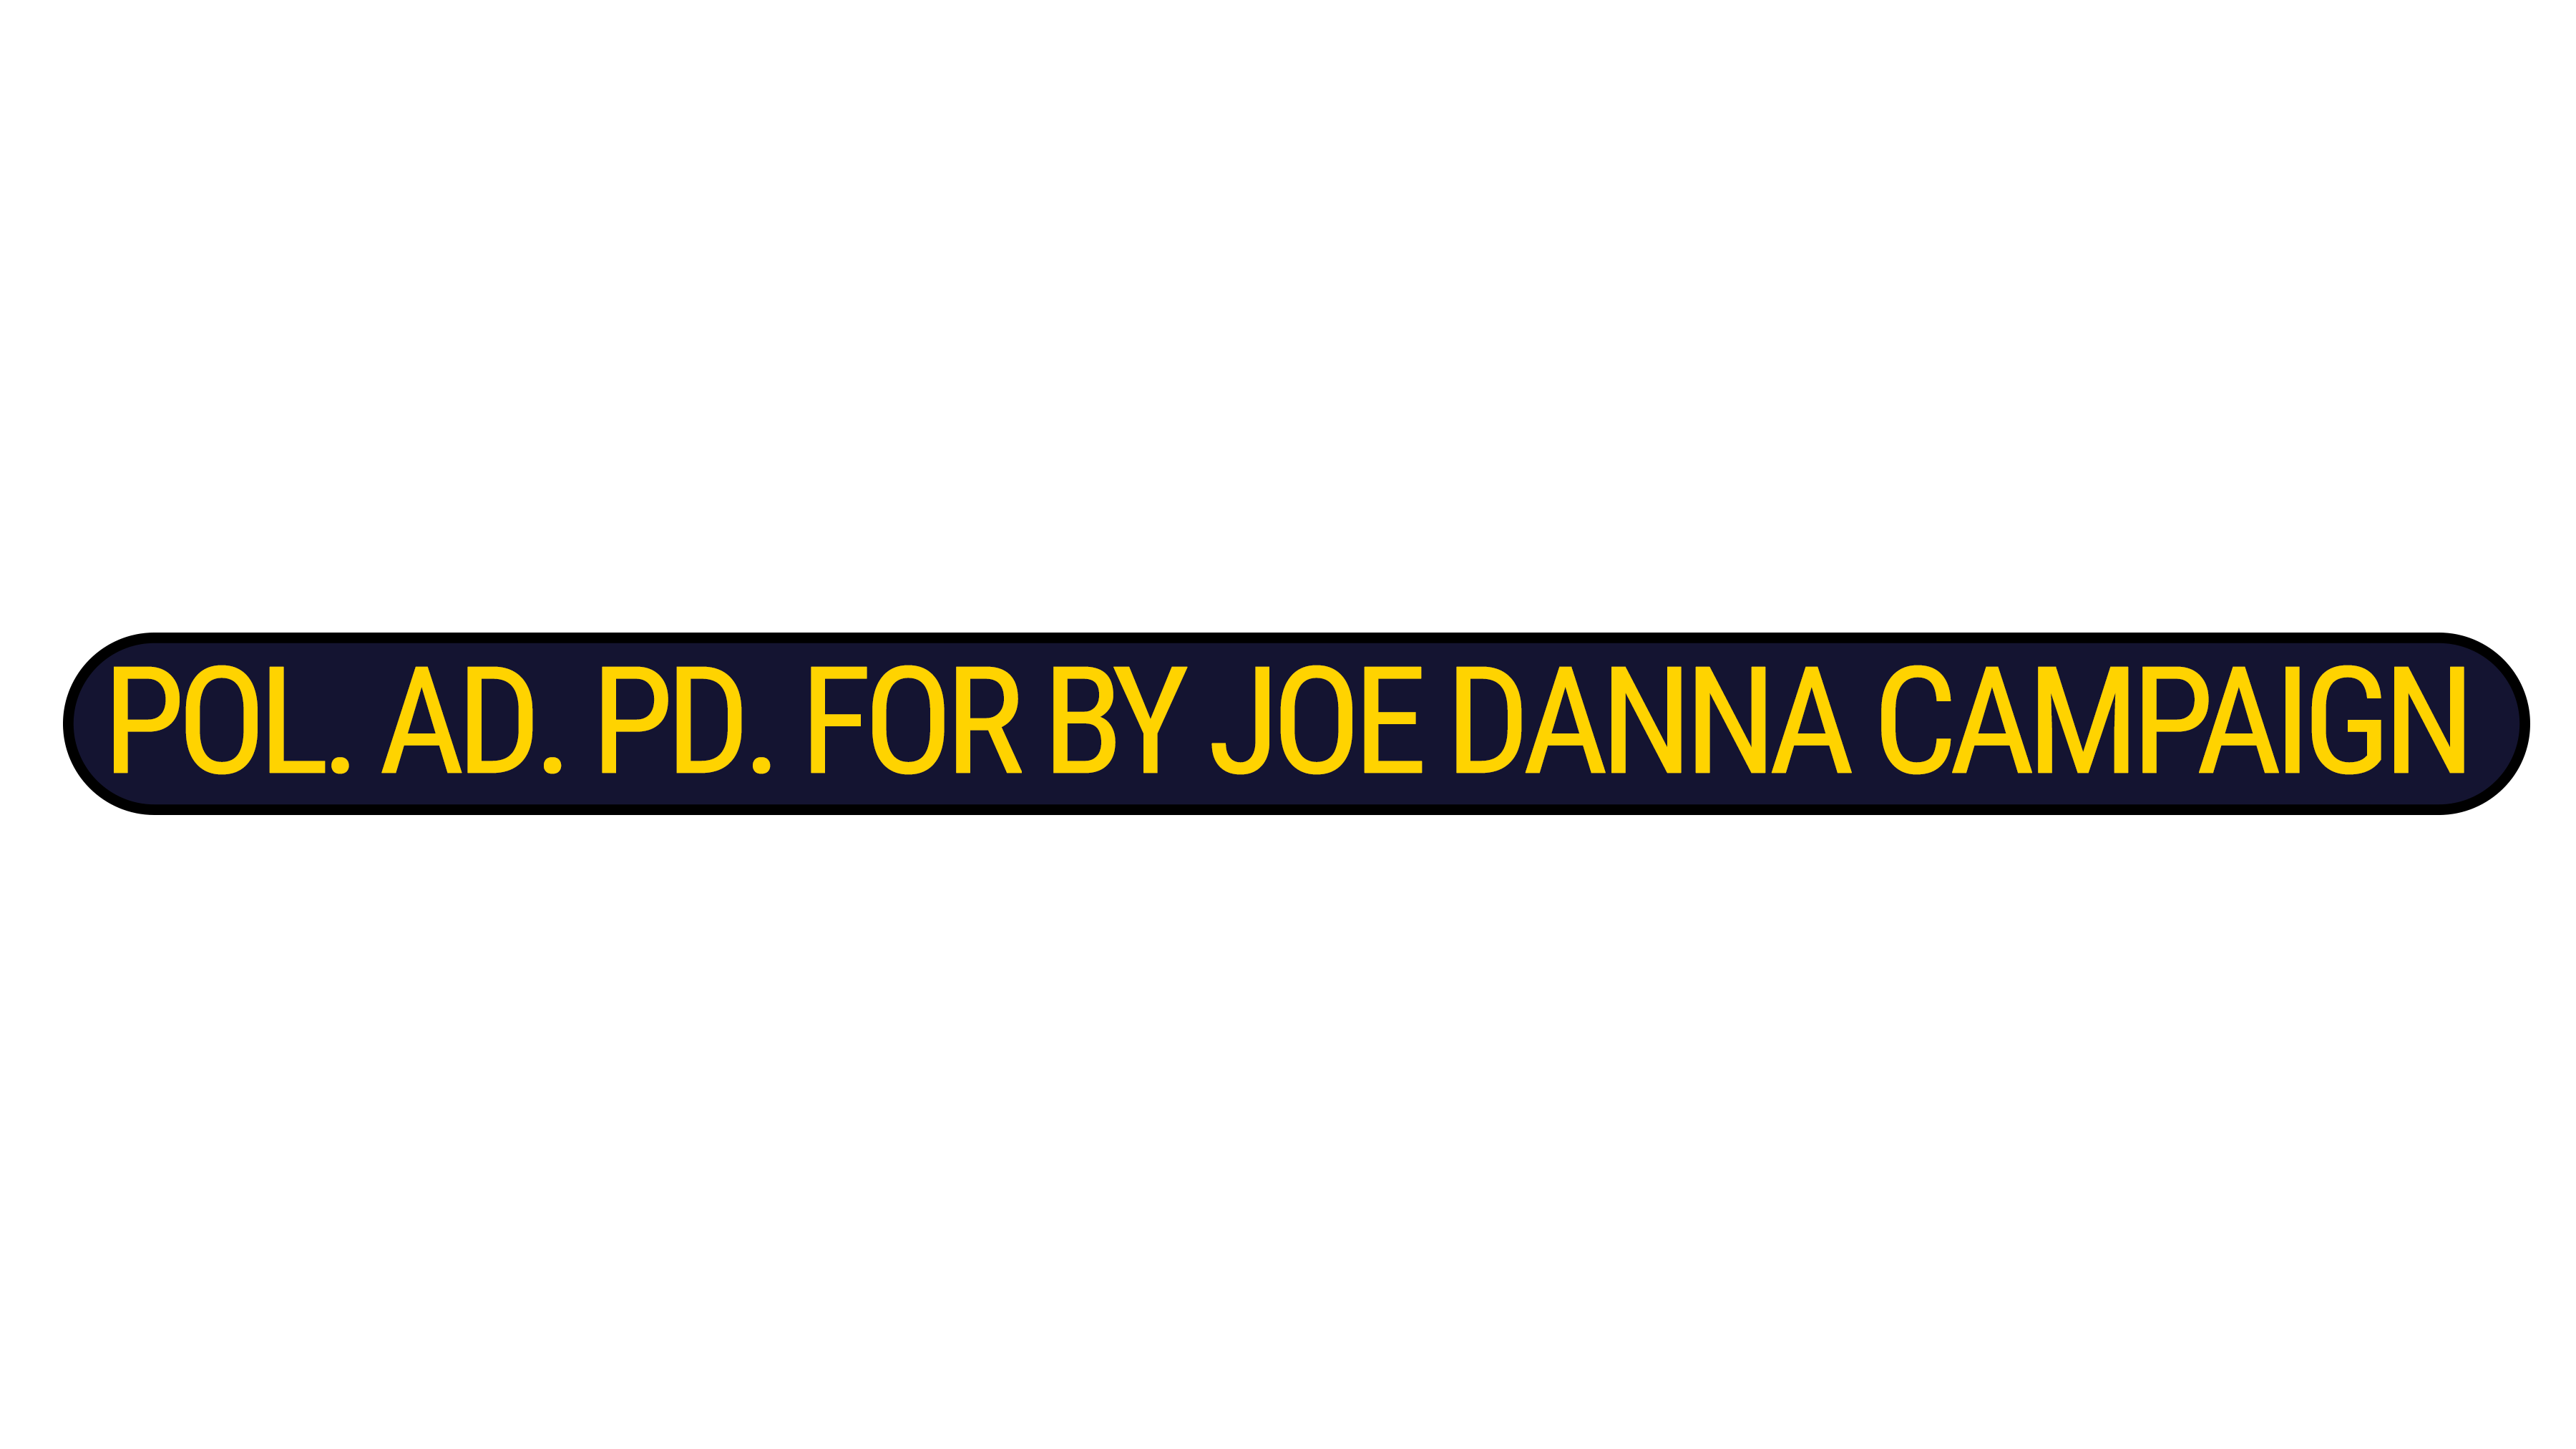 Joe Danna for Sheriff